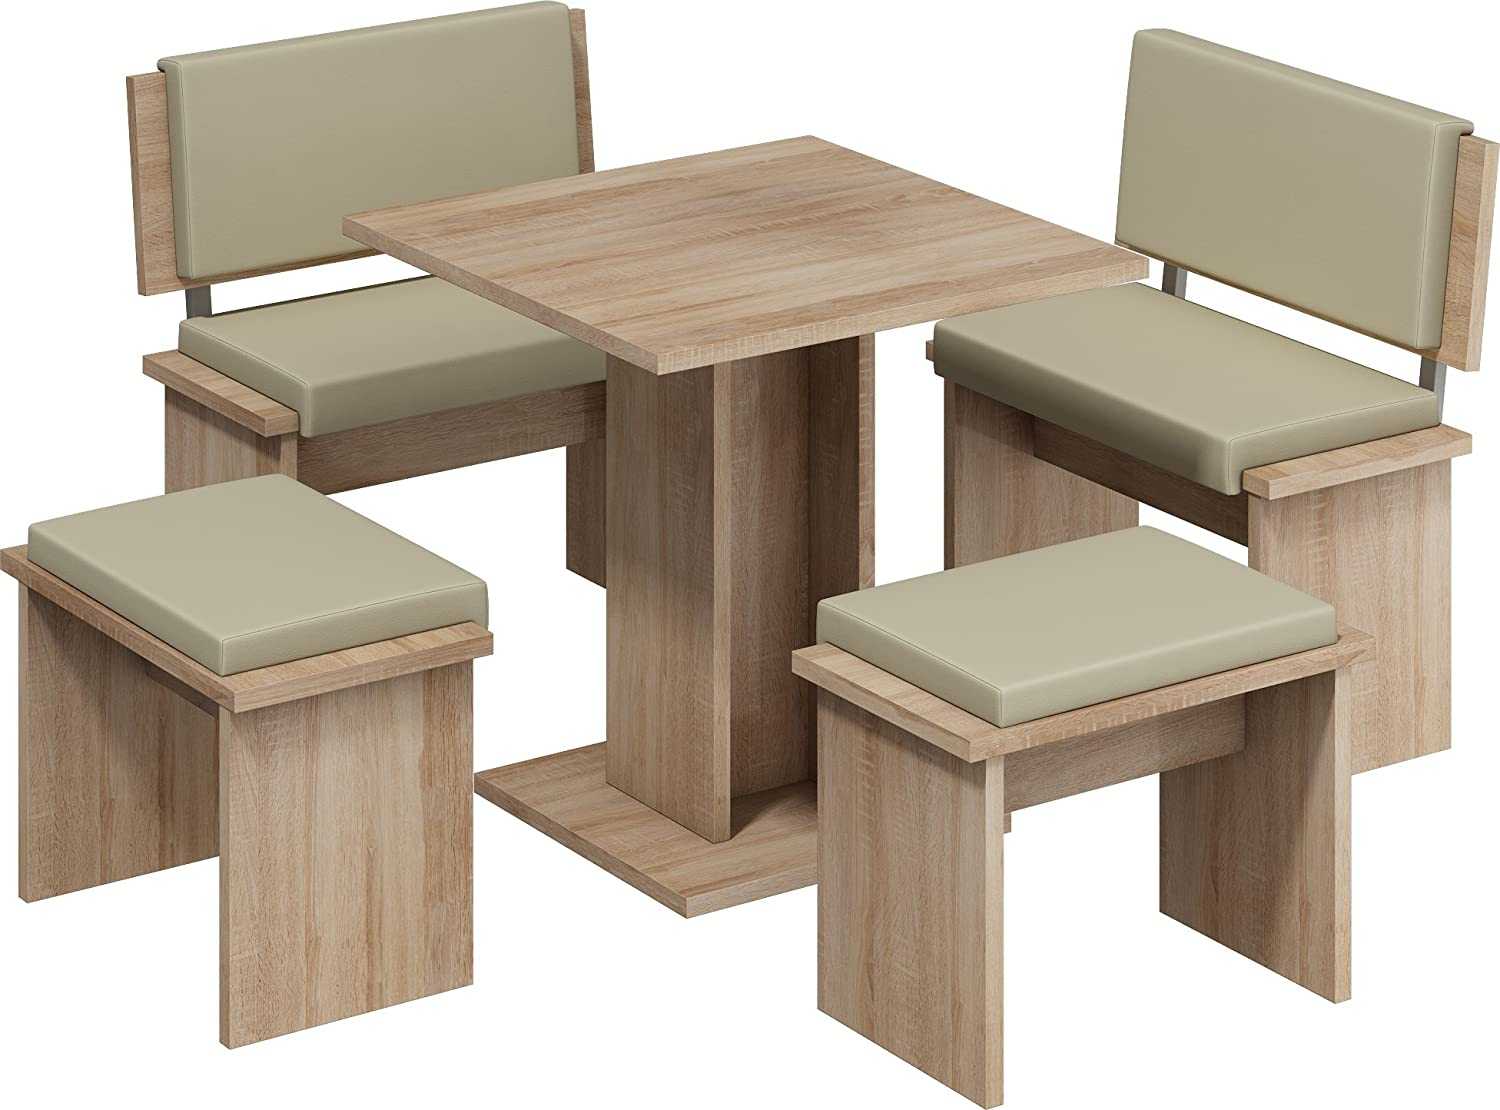 MEBLE FURNITURE & RUGS 5 Pc Breakfast Kitchen Nook Table Set, Bench Seating, Oak with Beige